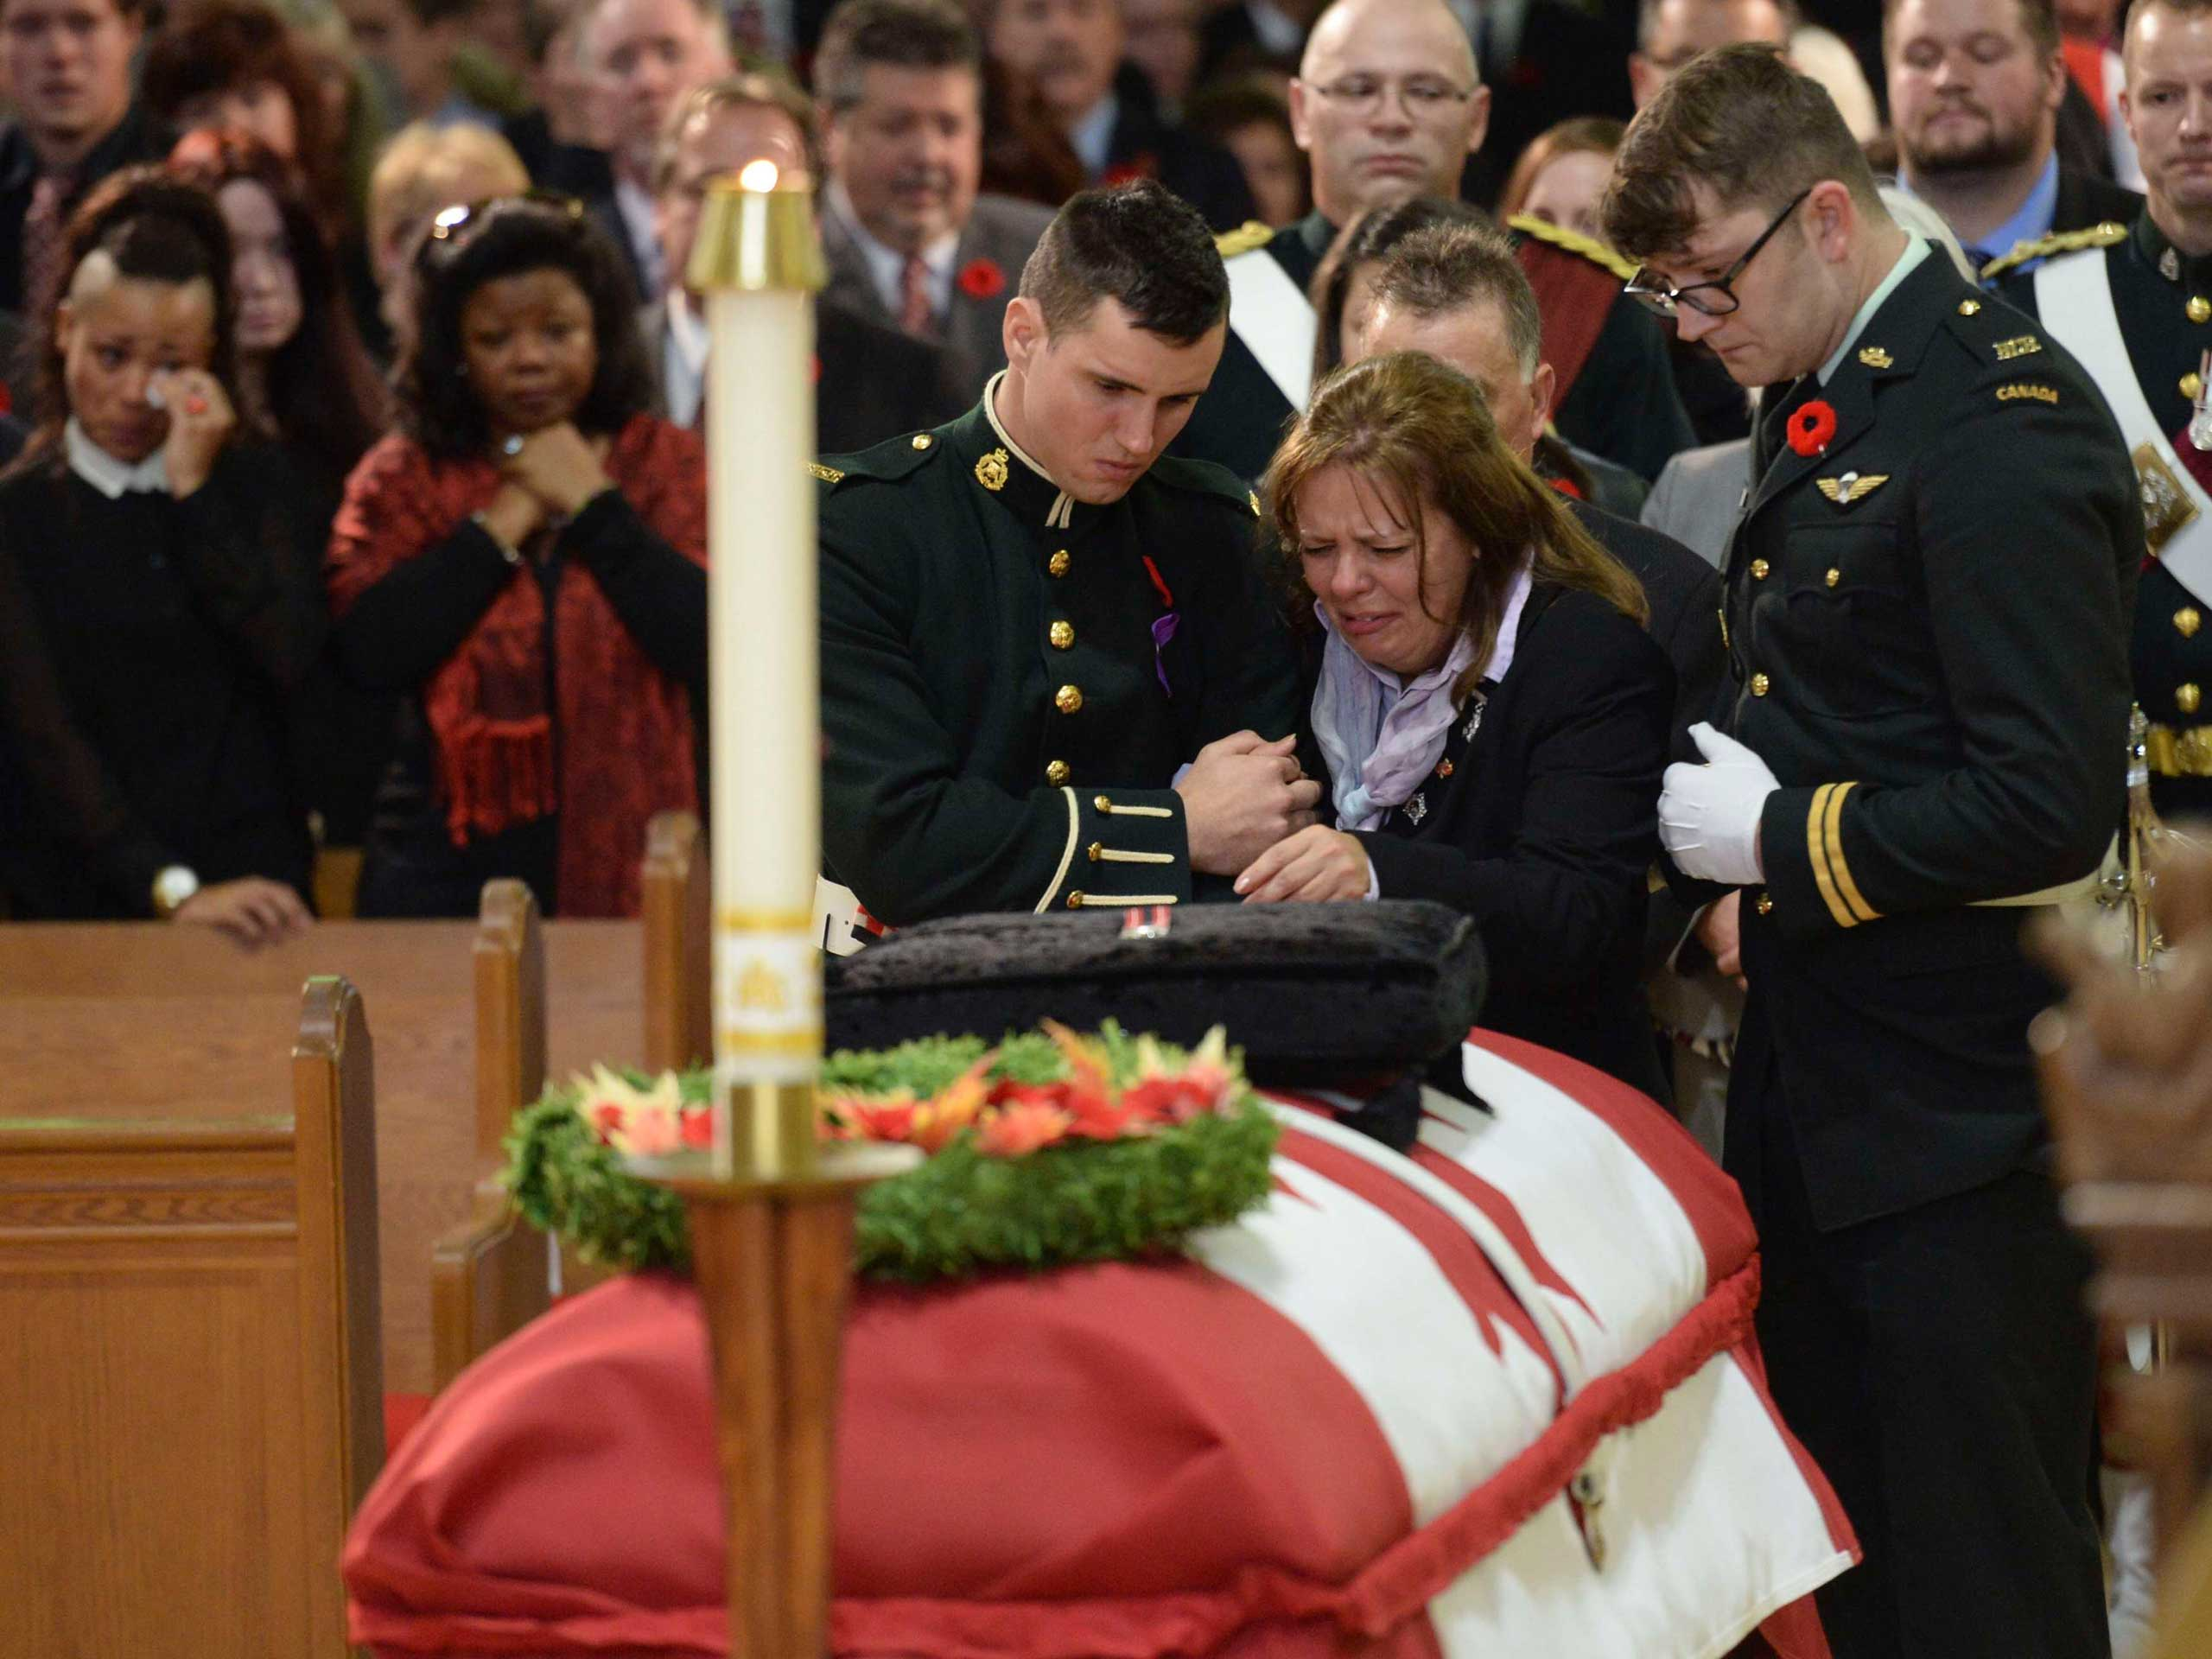 Oct. 28, 2014. Kathy Cirillo is comforted in front of the coffin of her son Cpl. Nathan Cirillo at his regimental funeral service in Hamilton, Ontario Province, Canada. Cirillo was standing guard at the National War Memorial in Ottawa last Wednesday when he was killed by a gunman who went on to open fire on Parliament Hill.